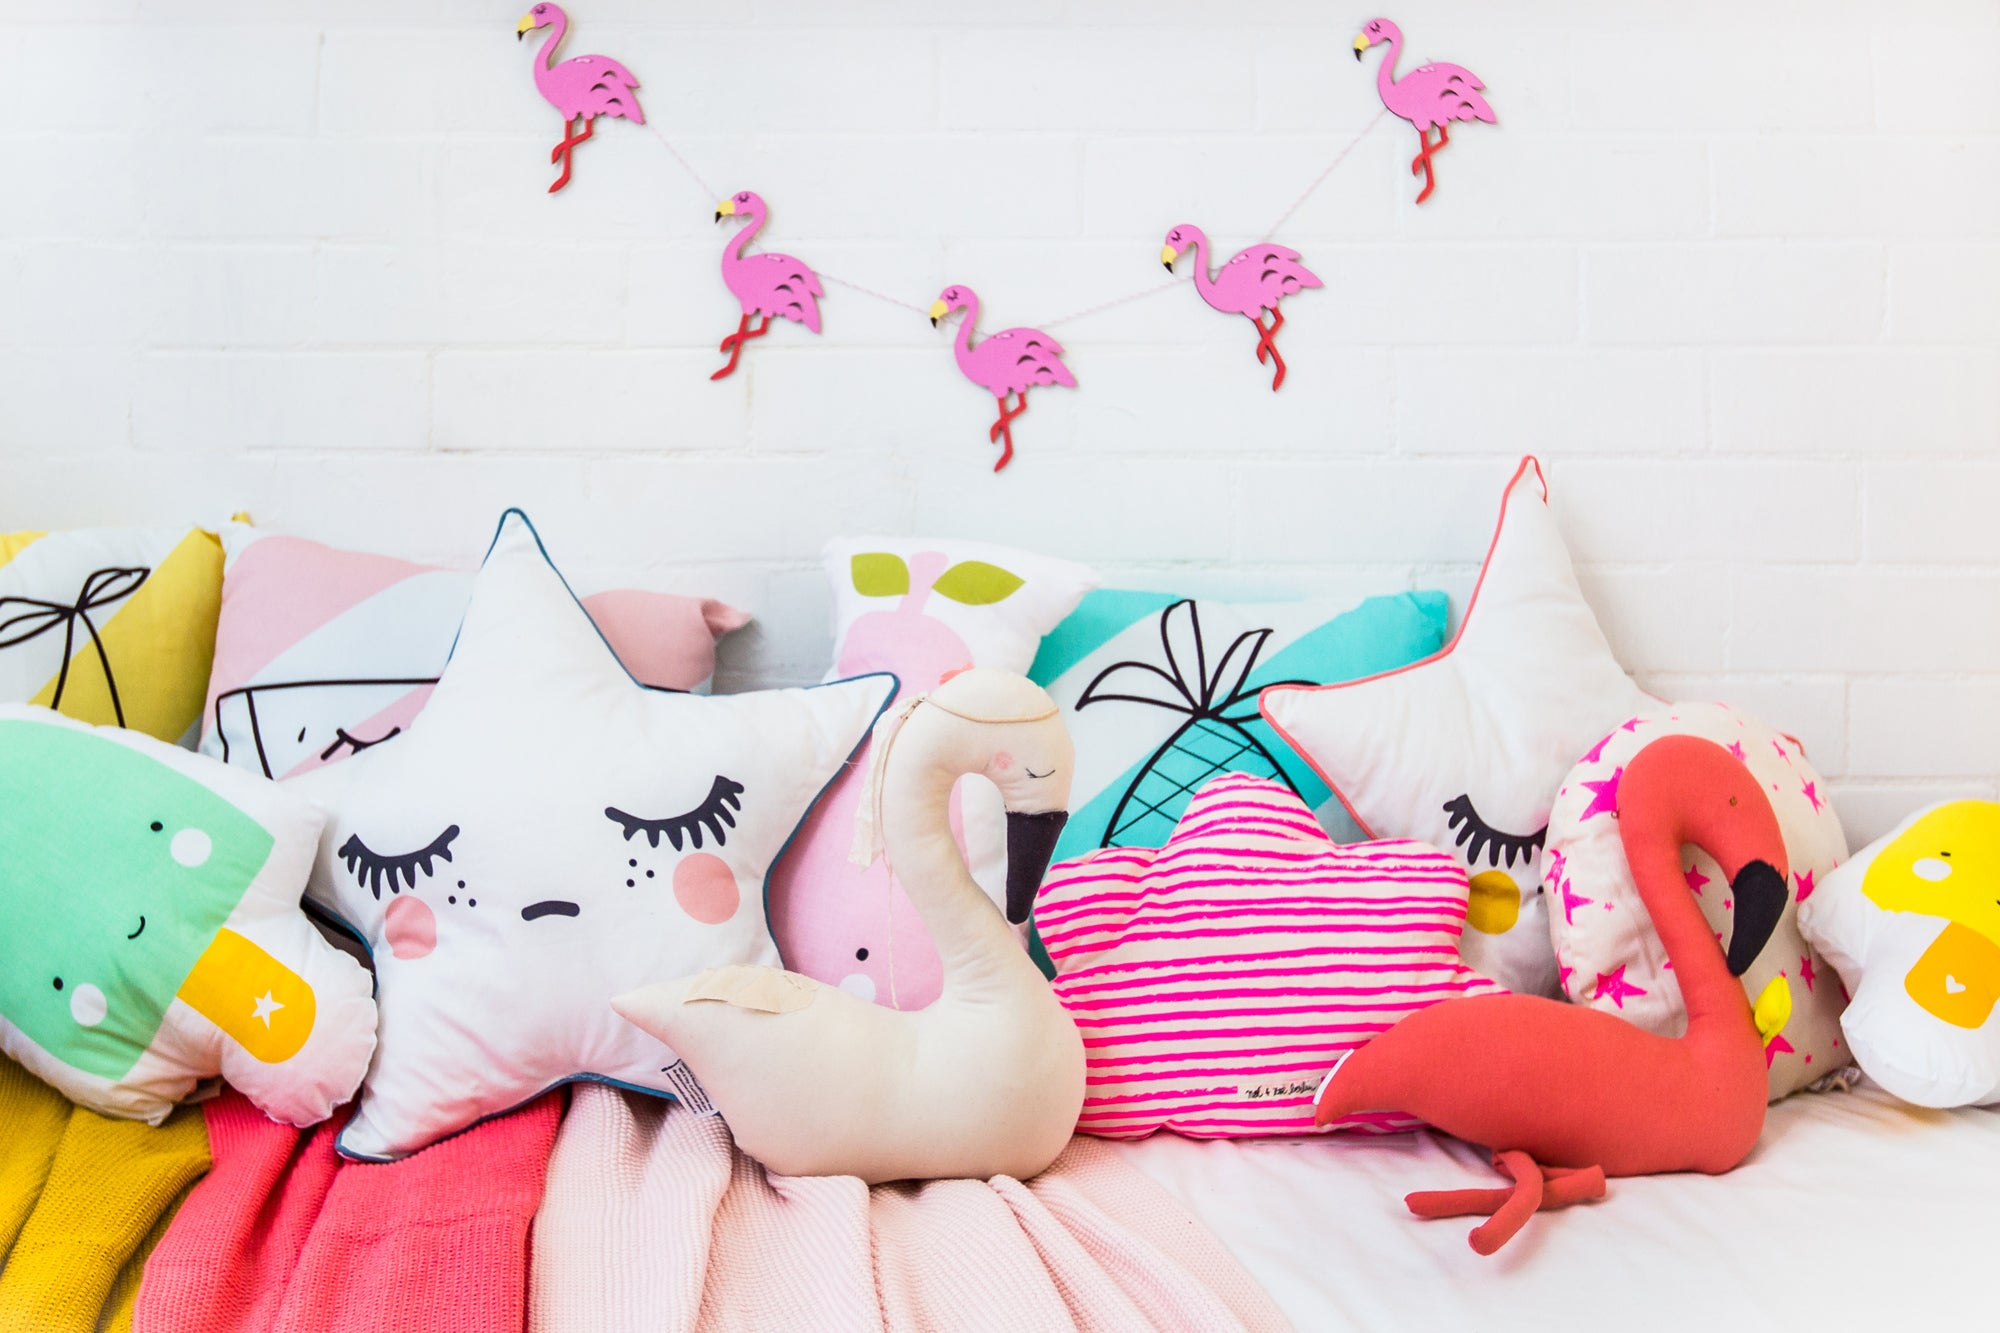 Cushions and Flamingo Garland, all available at Bobby Rabbit (room styling by Bobby Rabbit).